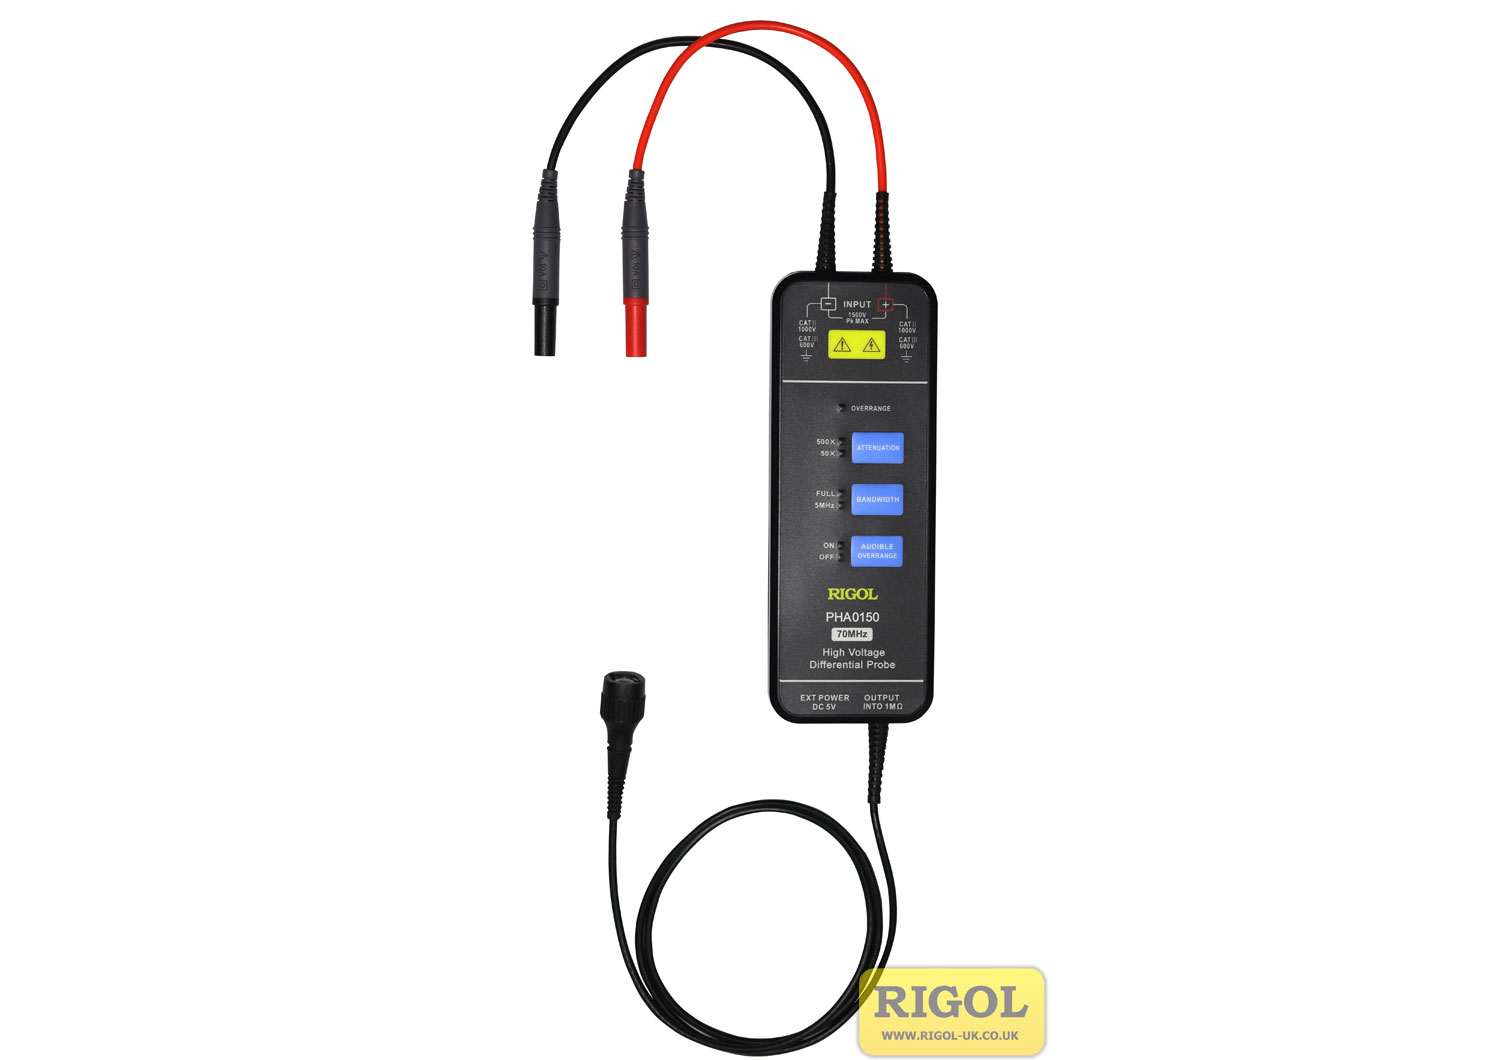 Rigol PHA0150 High Voltage Differential Probe